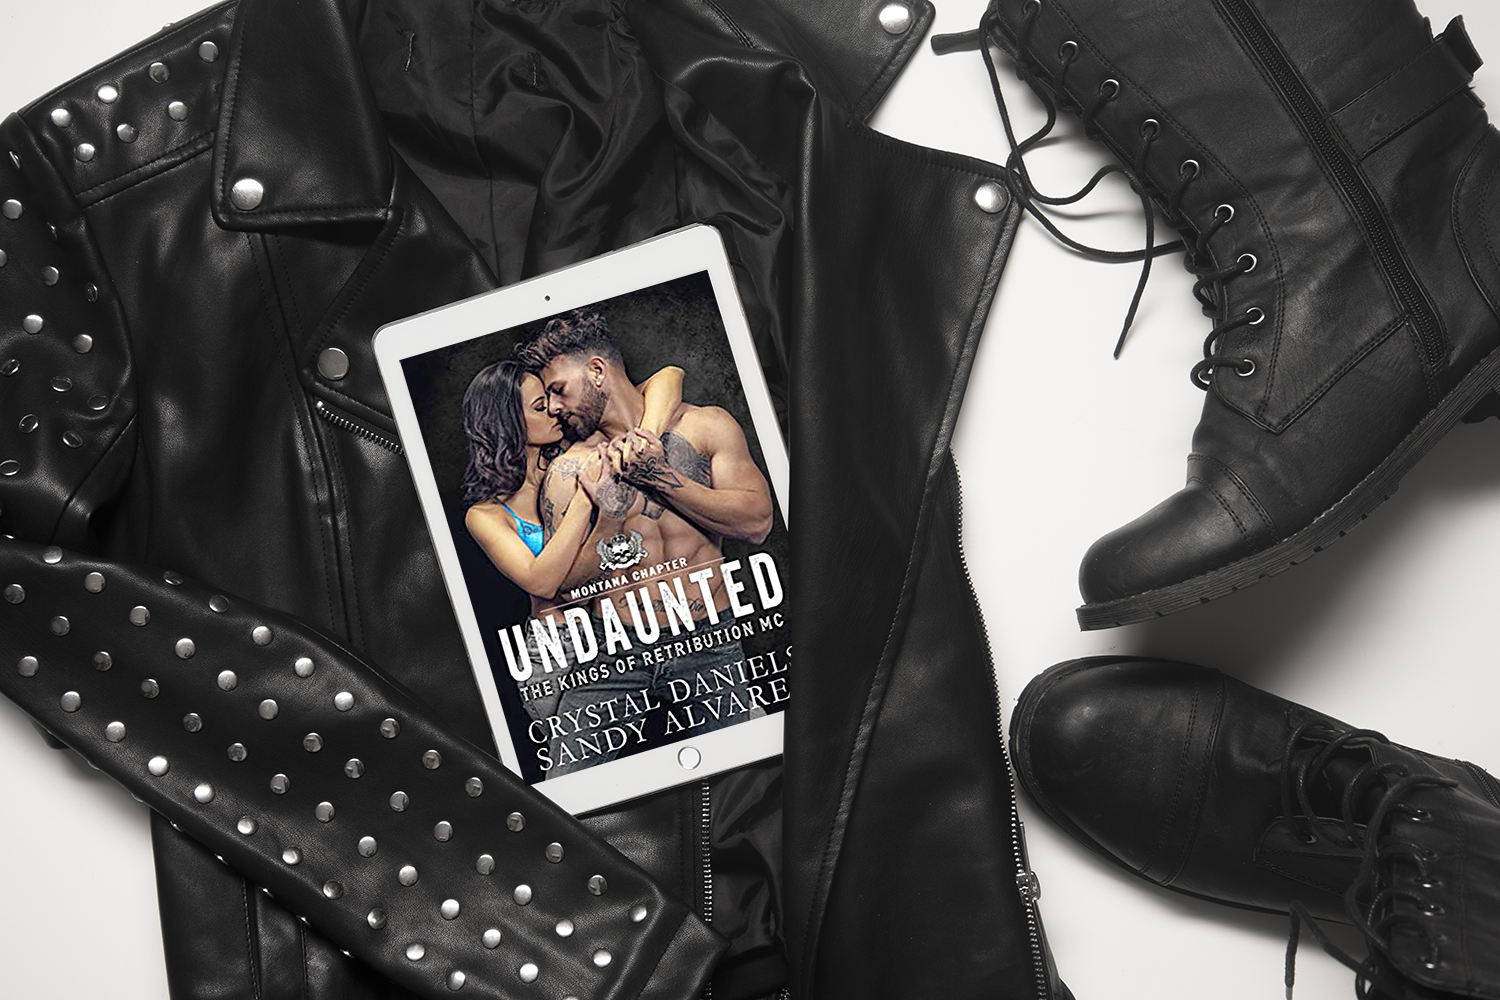 Undaunted by Sandy Alvarez & Crystal Daniels